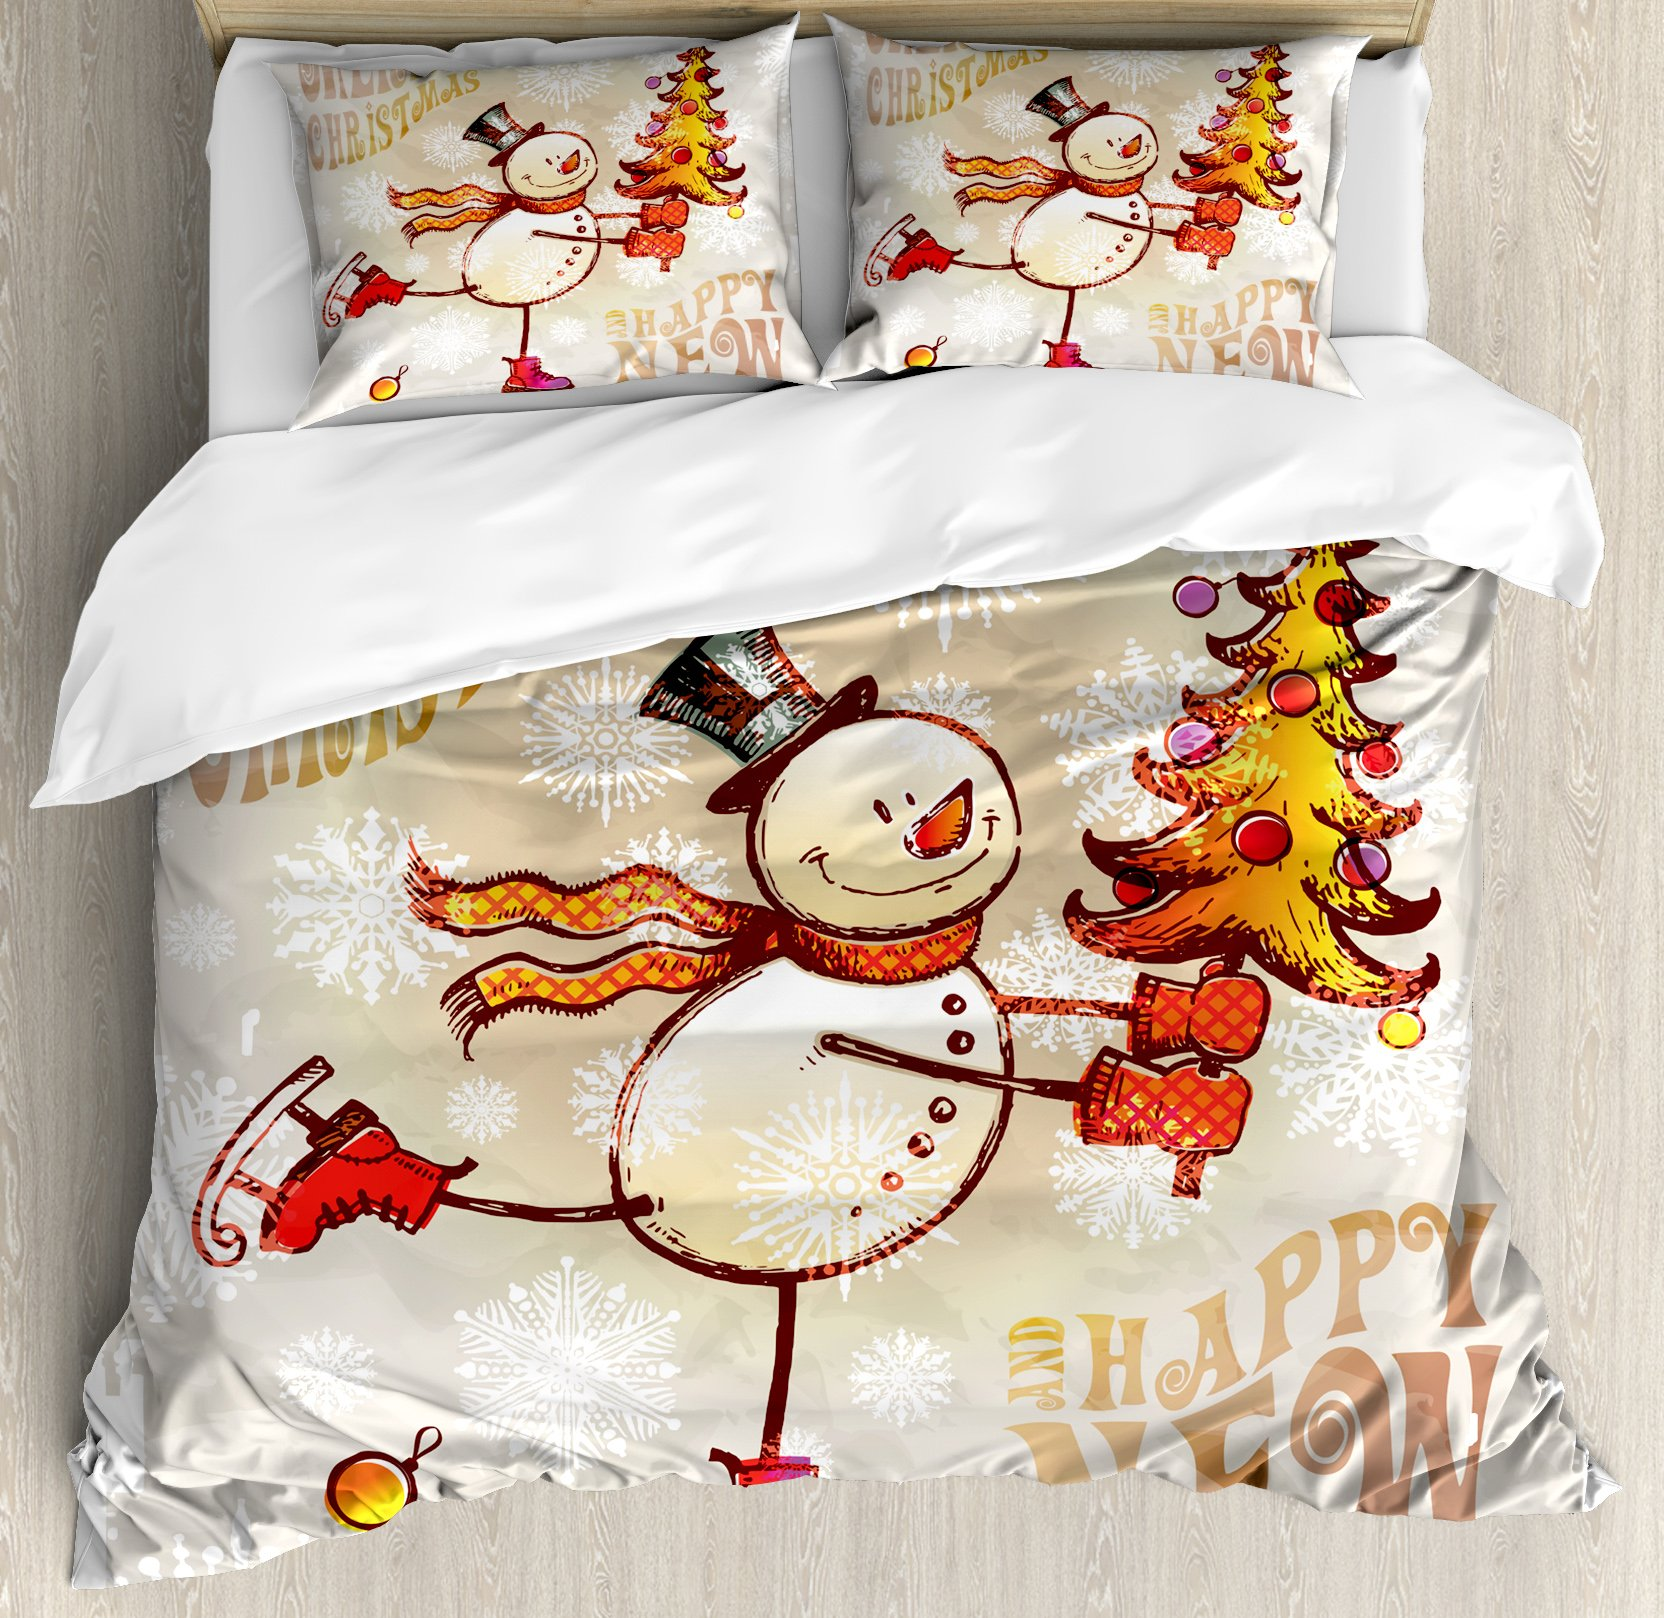 Christmas Queen Size Duvet Cover Set by Ambesonne, Skating Happy Snowman with Christmas Tree Cheerful Hand Drawn Ornate Snowflakes, Decorative 3 Piece Bedding Set with 2 Pillow Shams, Multicolor